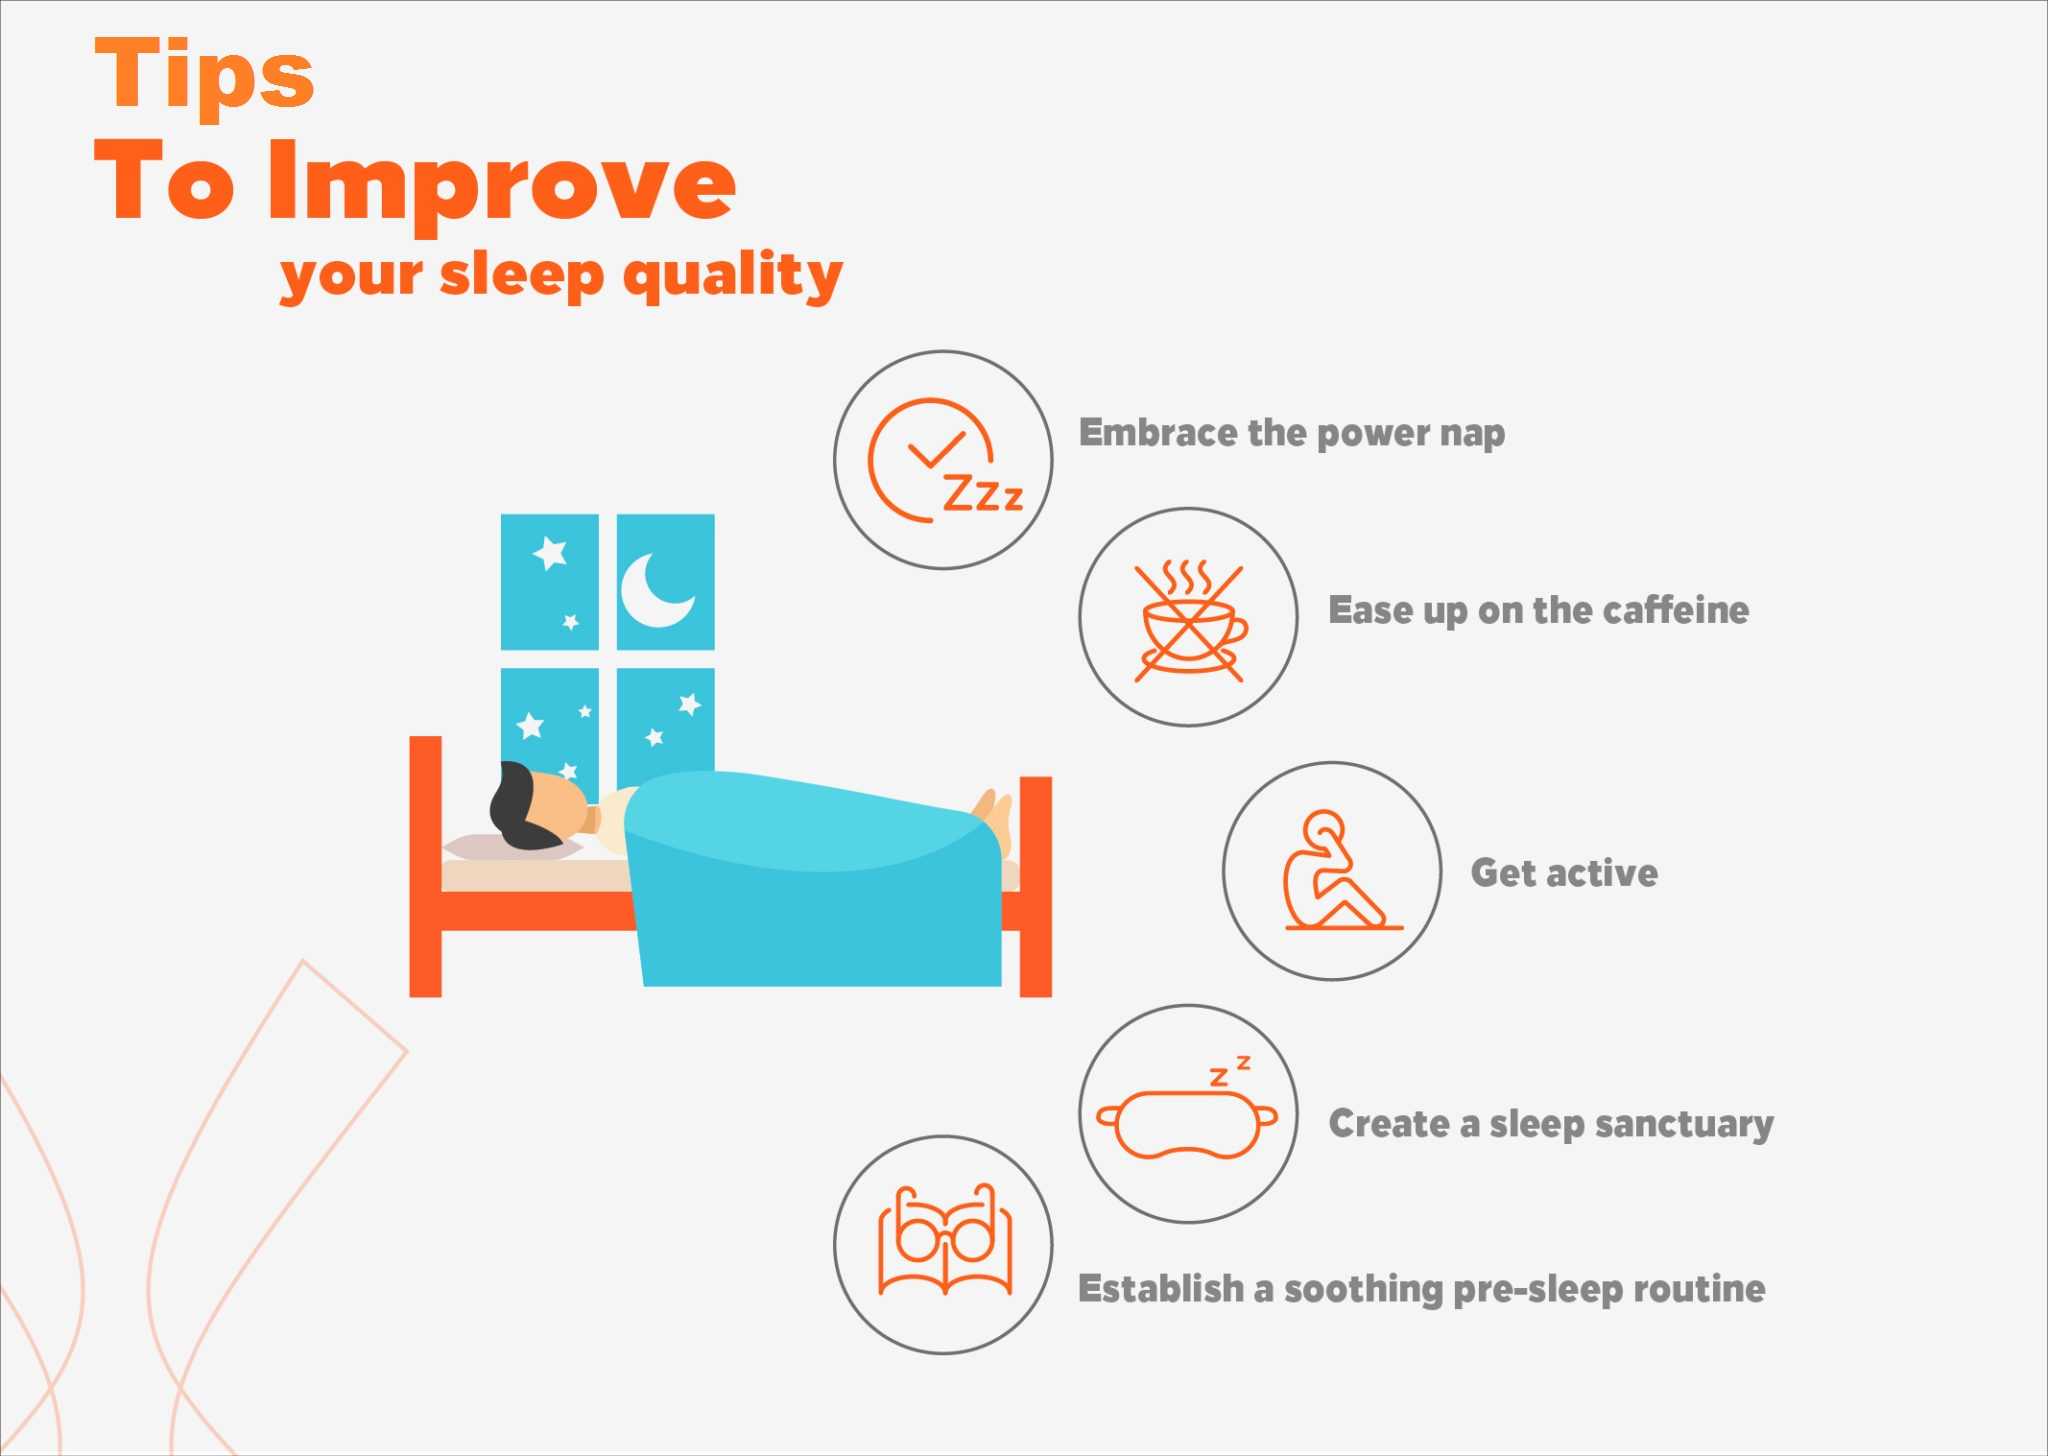 Tips To Improve Your Sleep Quality